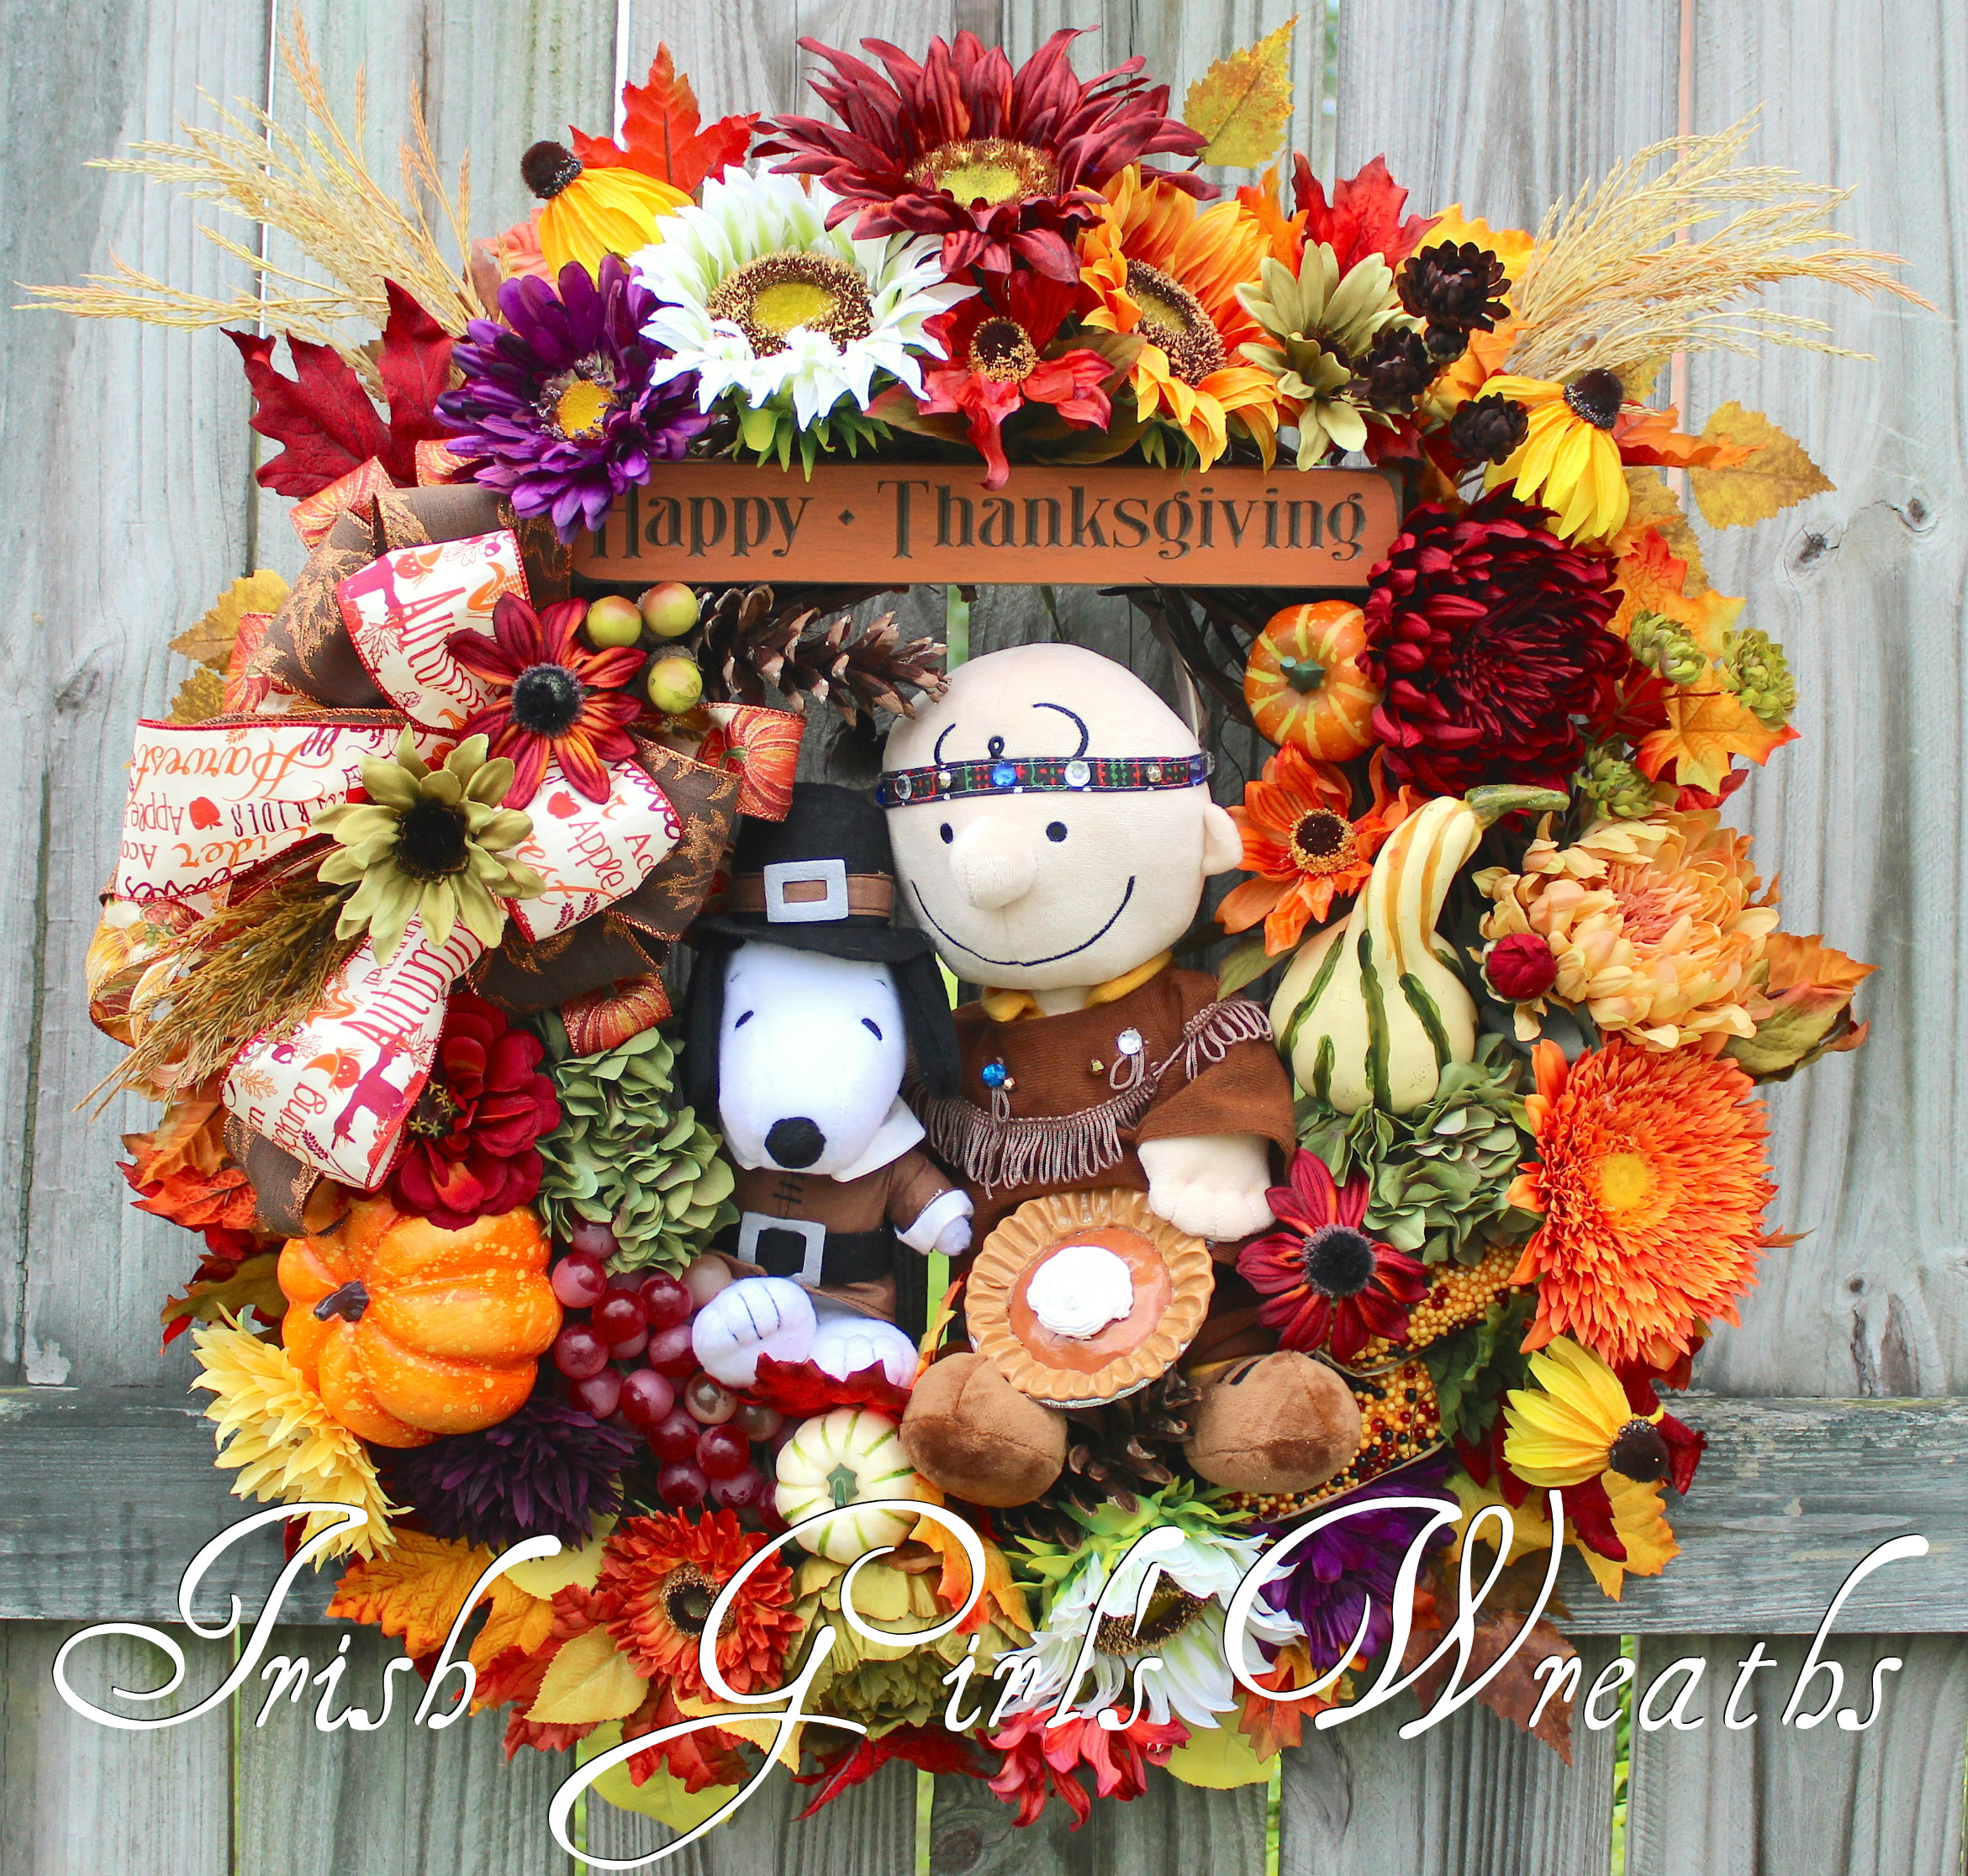 Indian Charlie Brown and Pilgrim Snoopy Peanuts Thanksgiving Wreath – NO REPRODUCTIONS